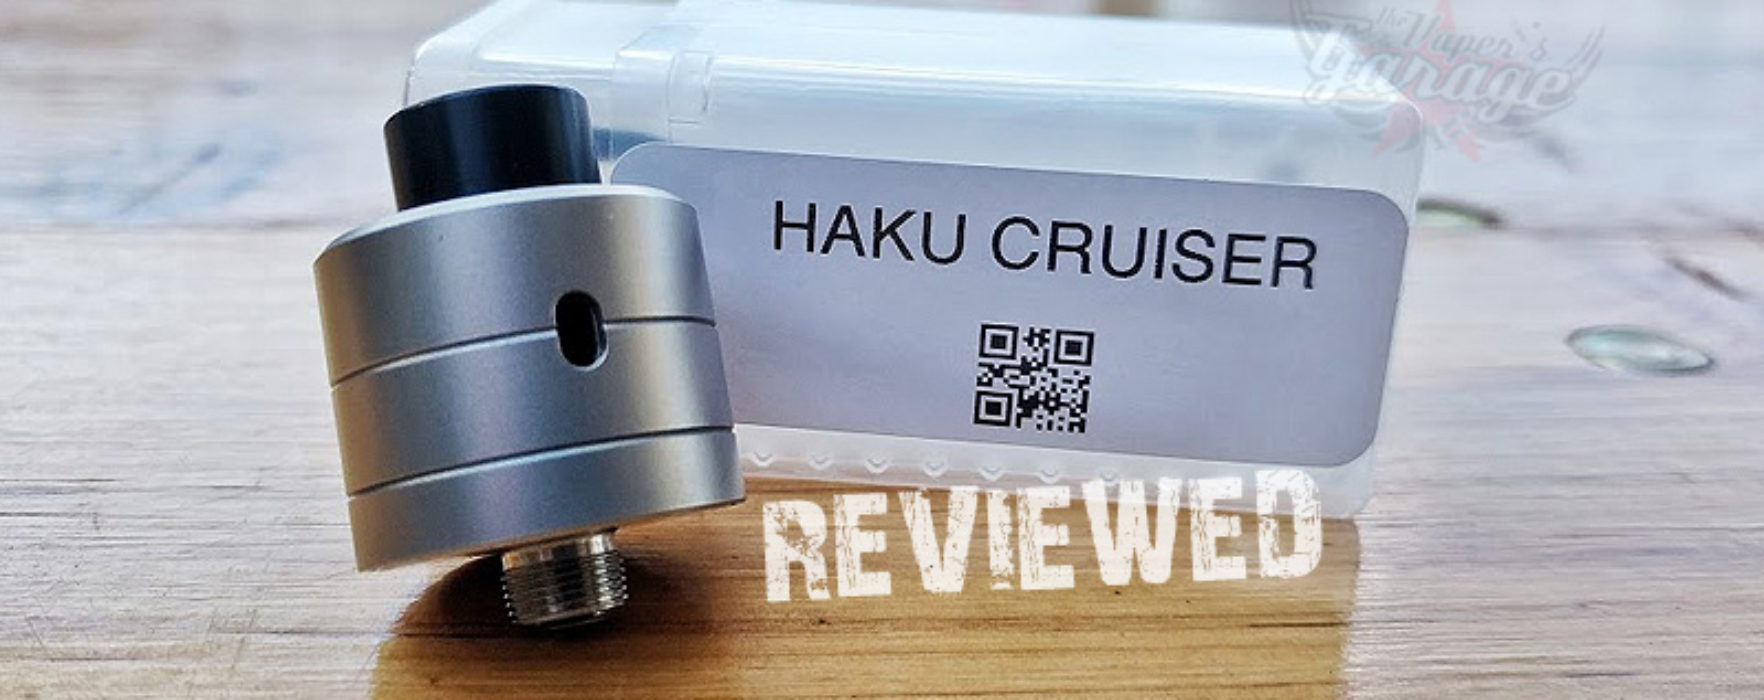 Hardware Review: Haku Cruiser RDA by Haku Engineering